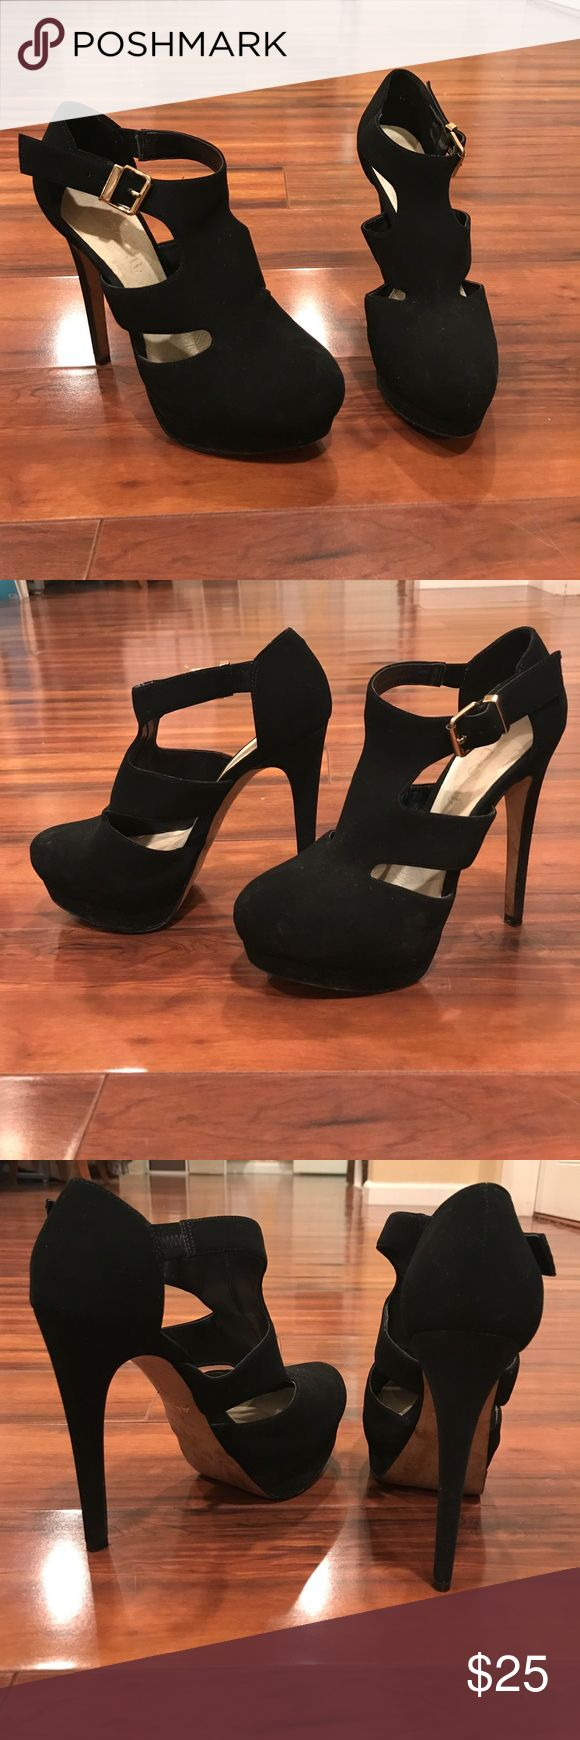 Black ALDO heels Buckles on the sides, closed toed, two openings on each side! Aldo Shoes Platforms